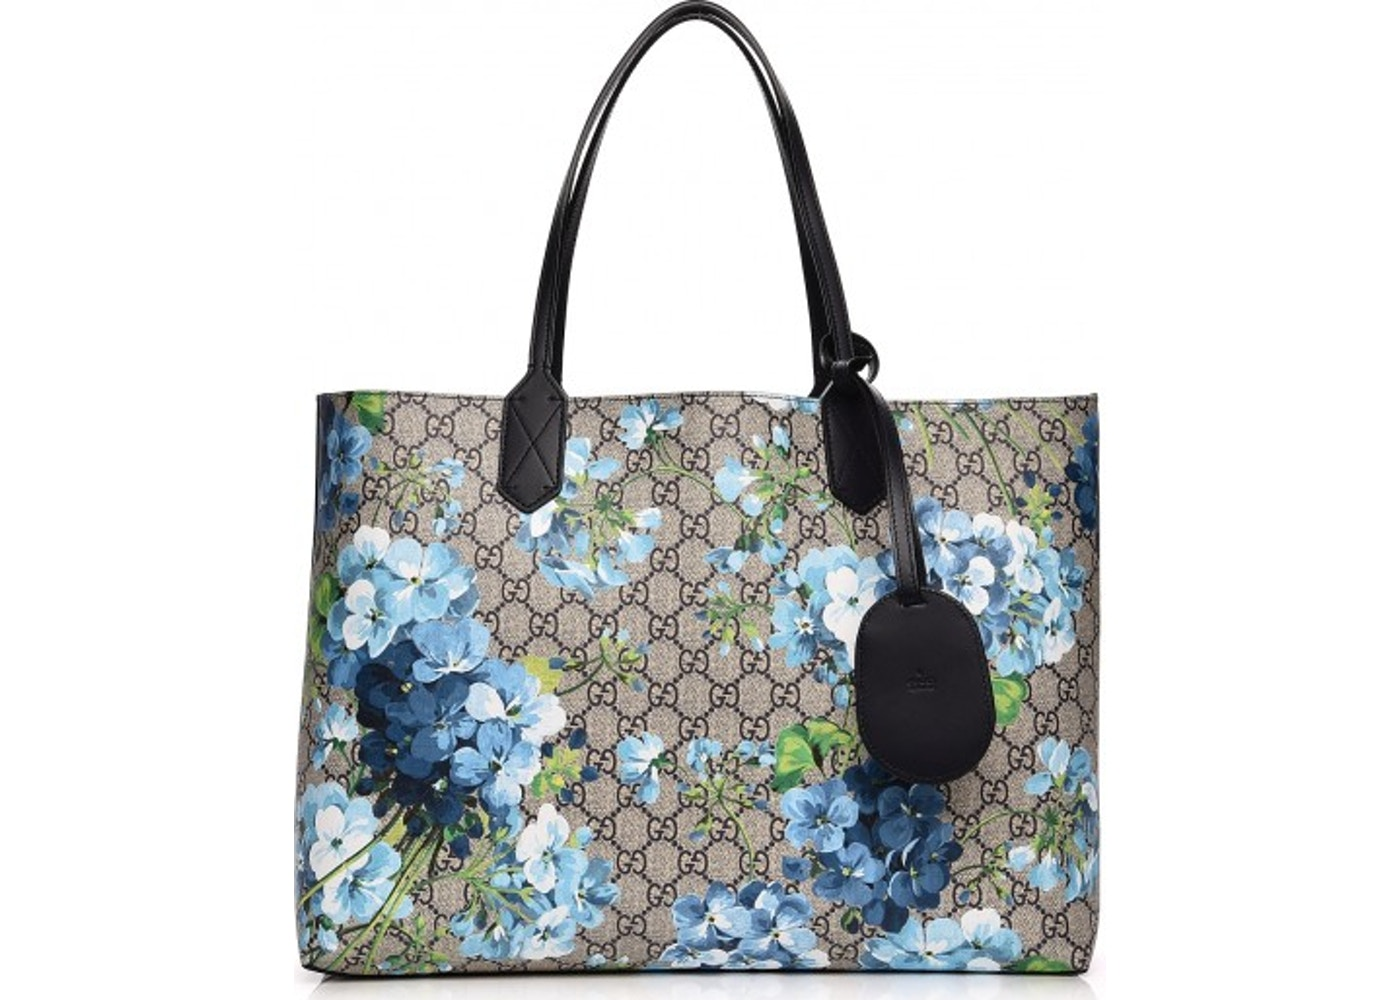 72ac0b7161e0 Gucci Reversible Tote Monogram GG Supreme Blooms Medium Beige ...